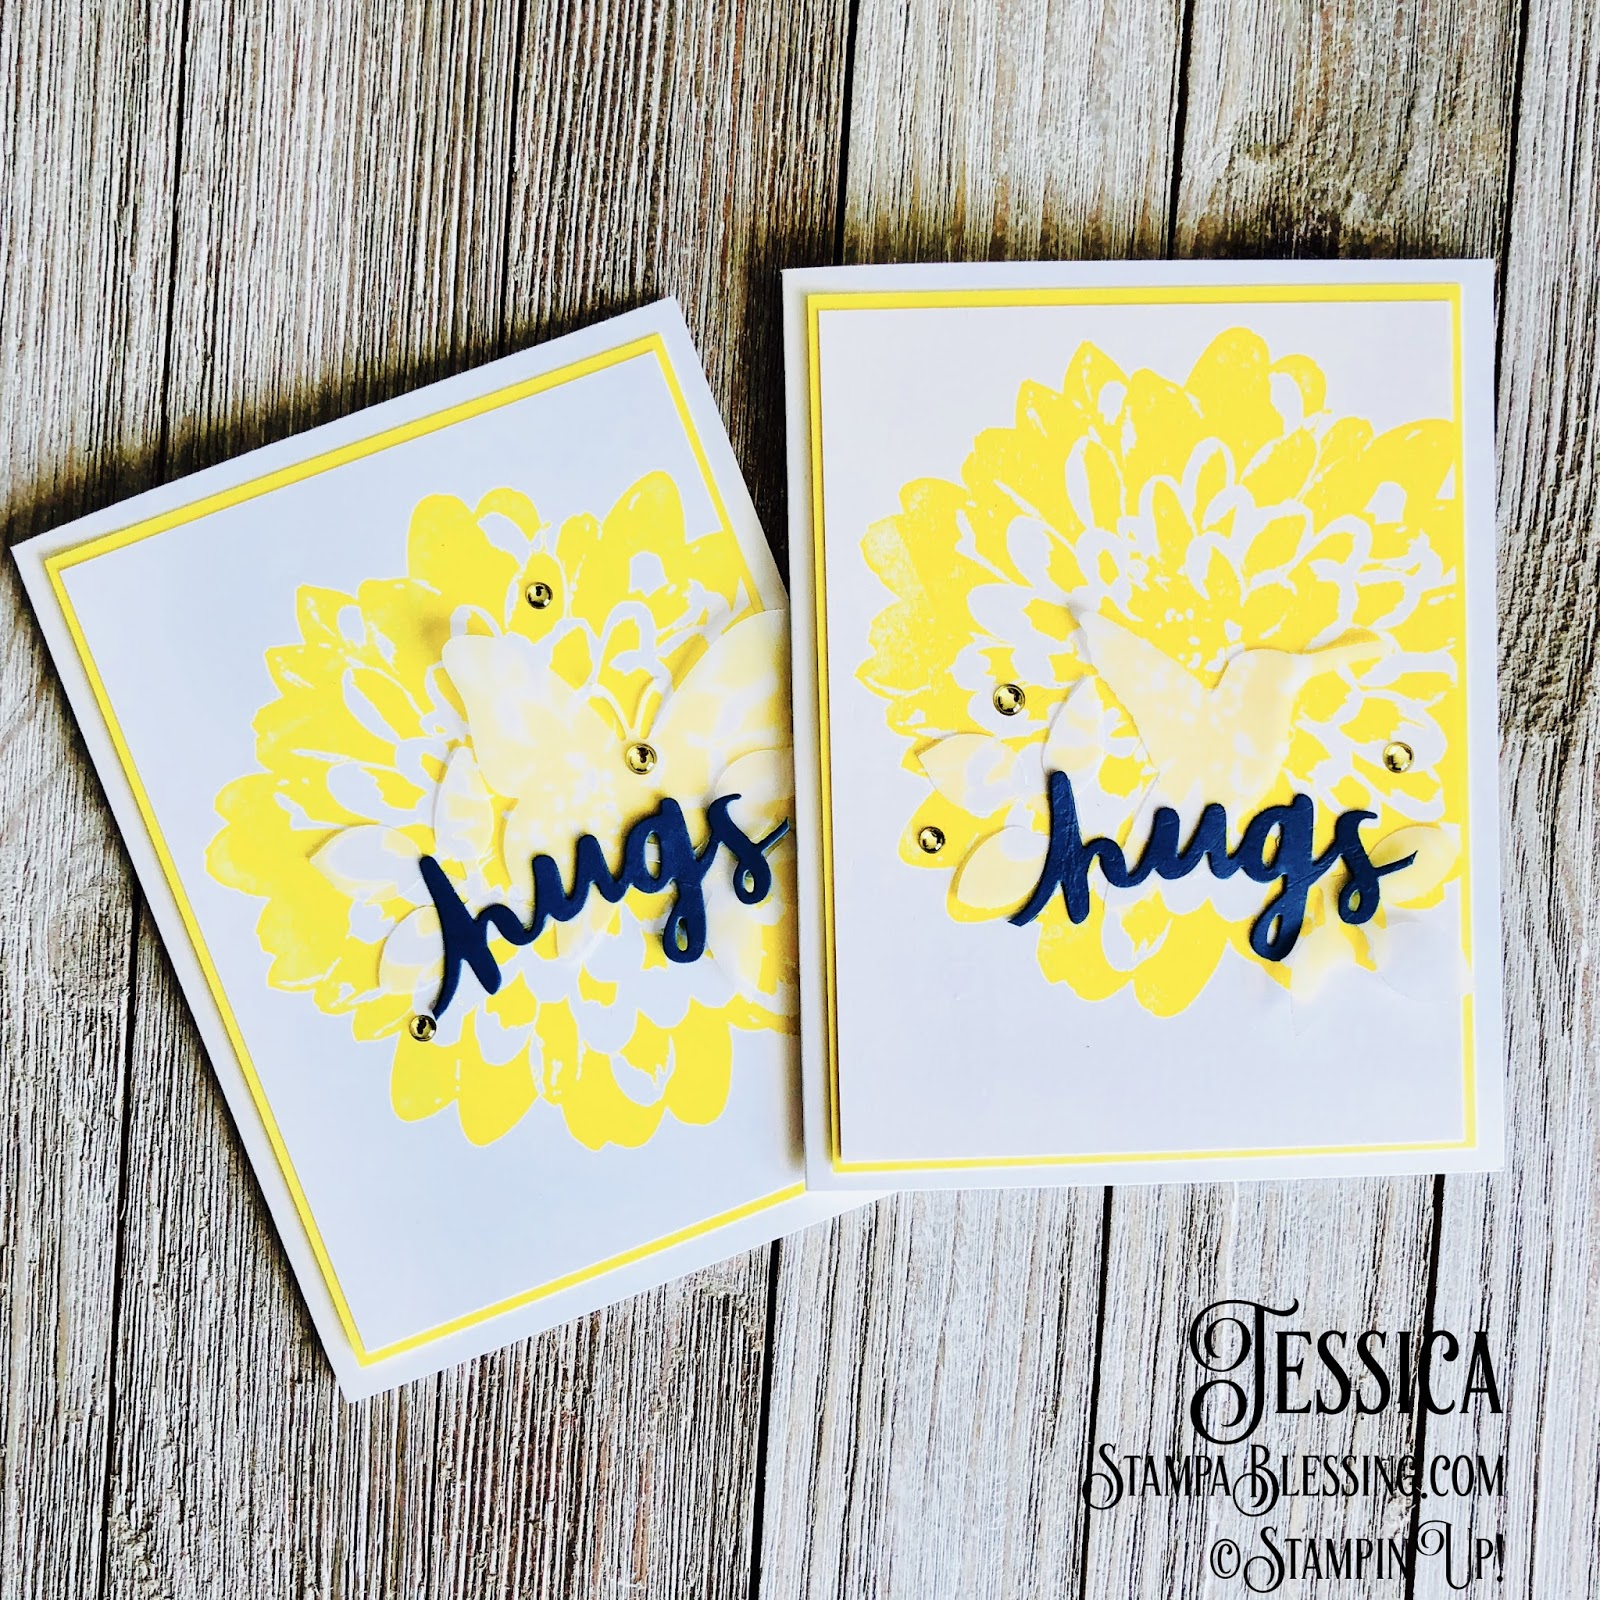 Stamp a Blessing: Last Chance: You Move Me Bundle hugs!